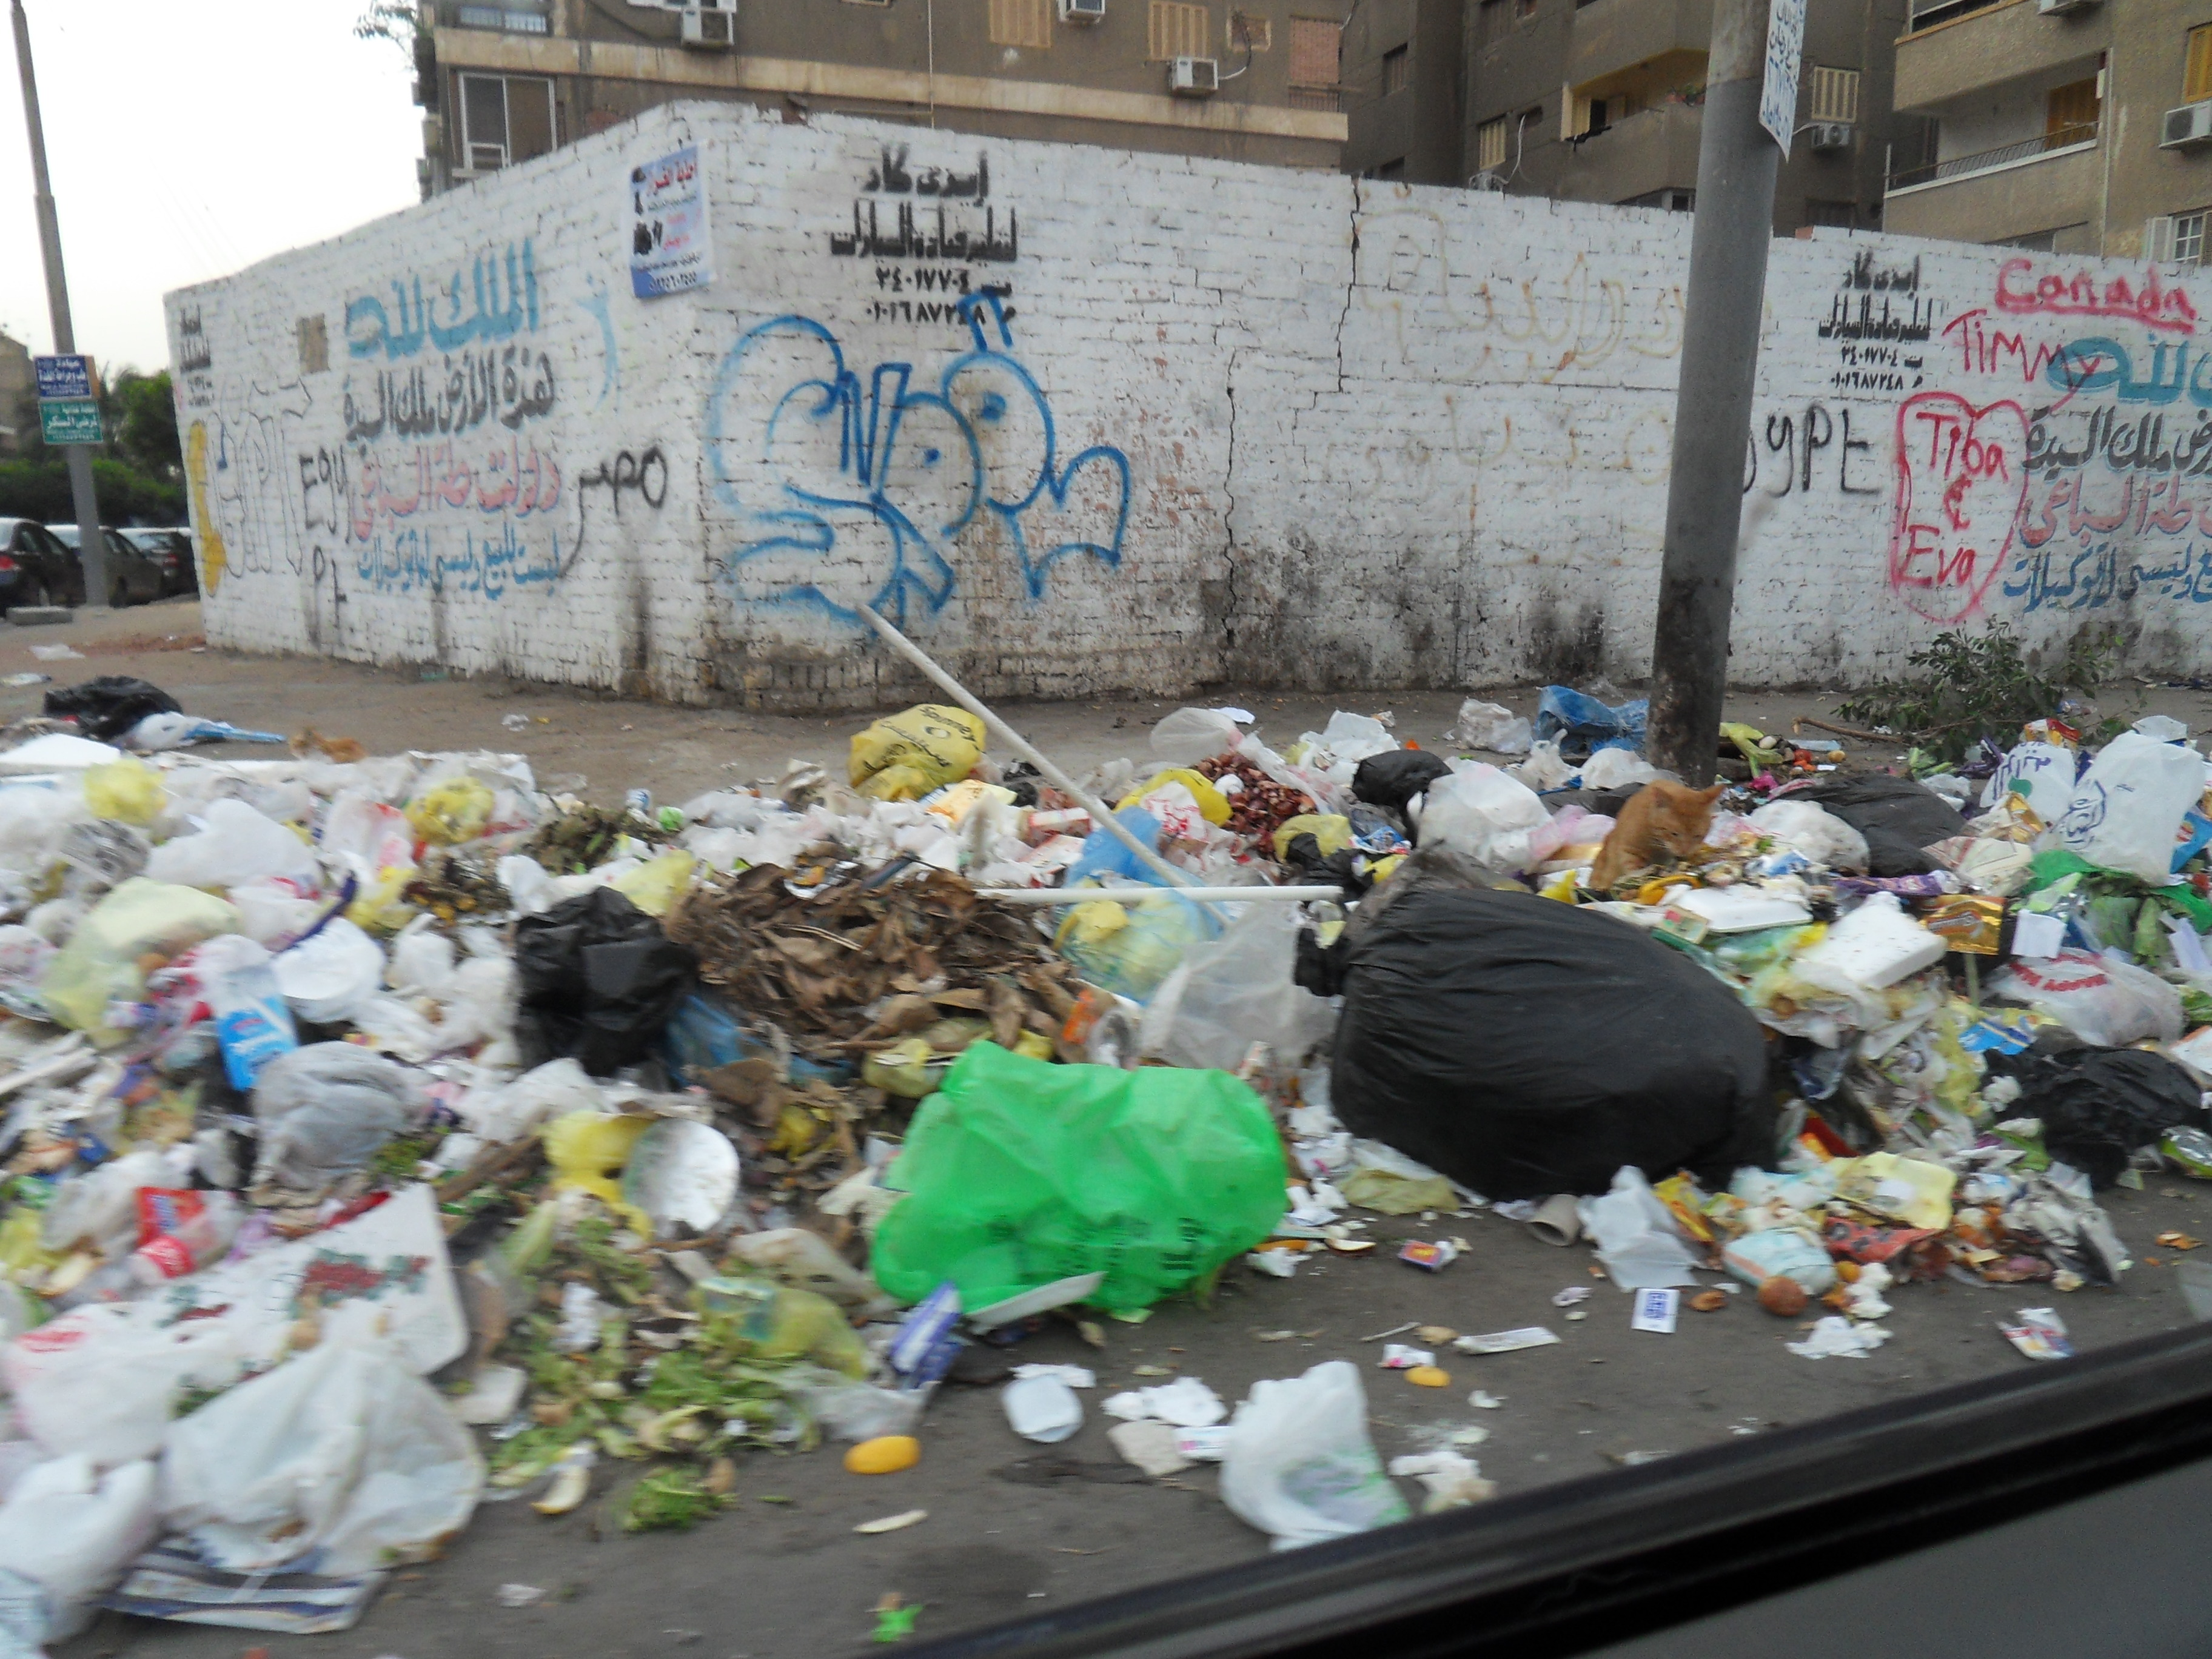 Welcome to Cairo. The City of a thousand garbage piles.